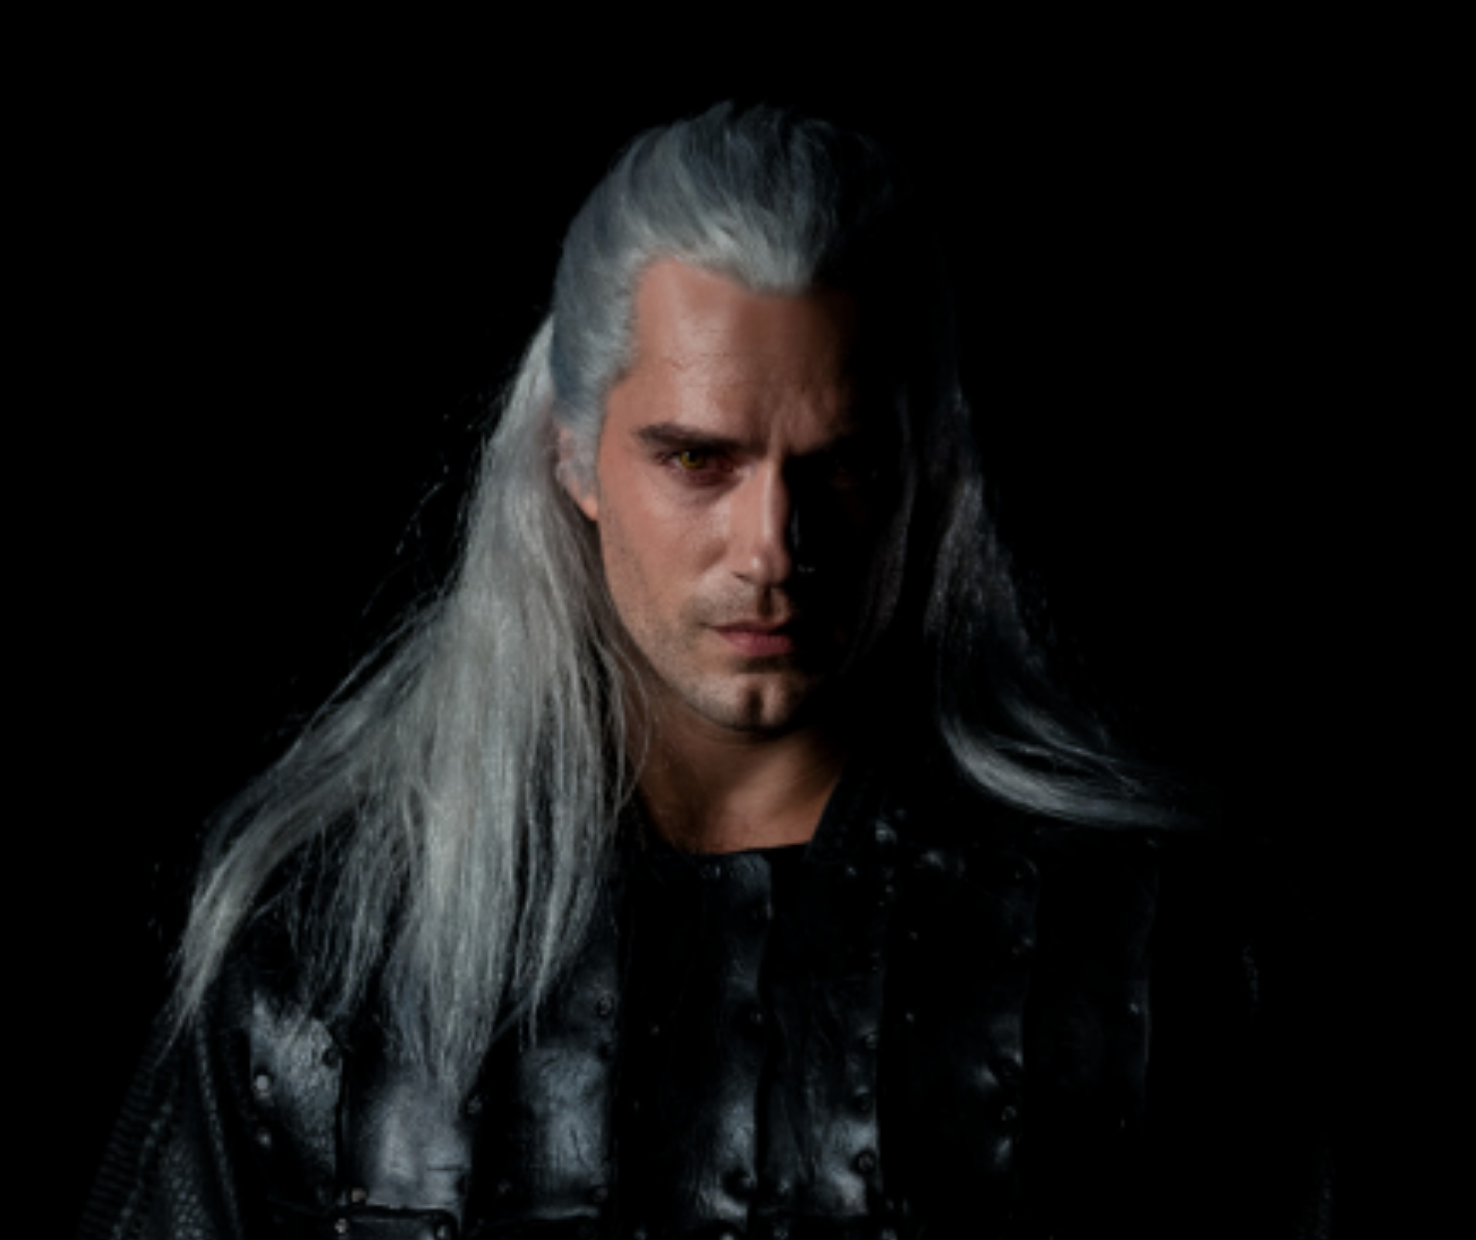 Variety Reveals Henry Cavill's First Look as Geralt from 'The Witcher'